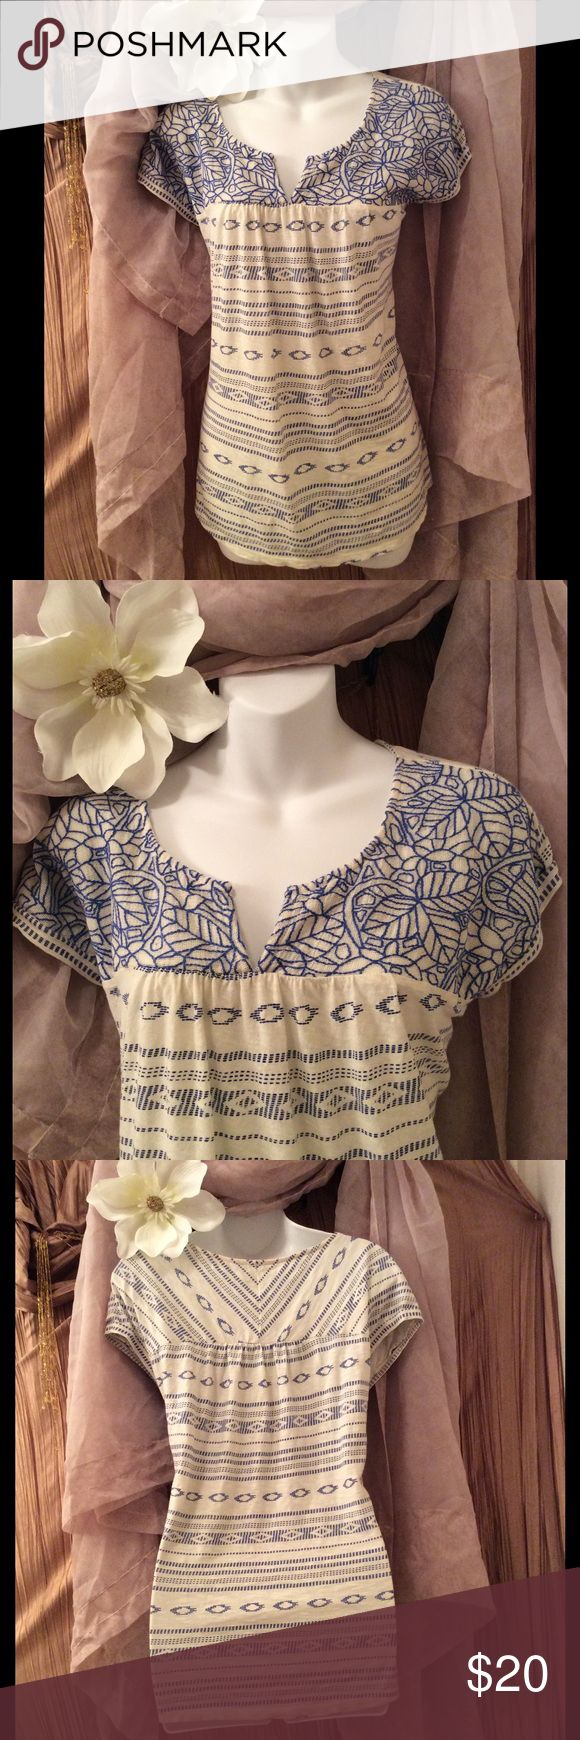 💕LUCKY BRAND💕 Top size L 💕 Very flattering & Beautiful top. Lucky Brand Size L. In Excellent Condition! I absolutely Love the print work and gorgeous detail on this top. Made in India. Made of 100% Cotton. 💕 If you have any questions please feel free to ask, Also Thank you so much for taking a moment to visit my closet! 👍🤗💕I hope you find something that you love! Leave your posh name in the comments so I can check out your closet as well! Thanks, Happy Poshing! 😍😘 Lucky Brand  Tops